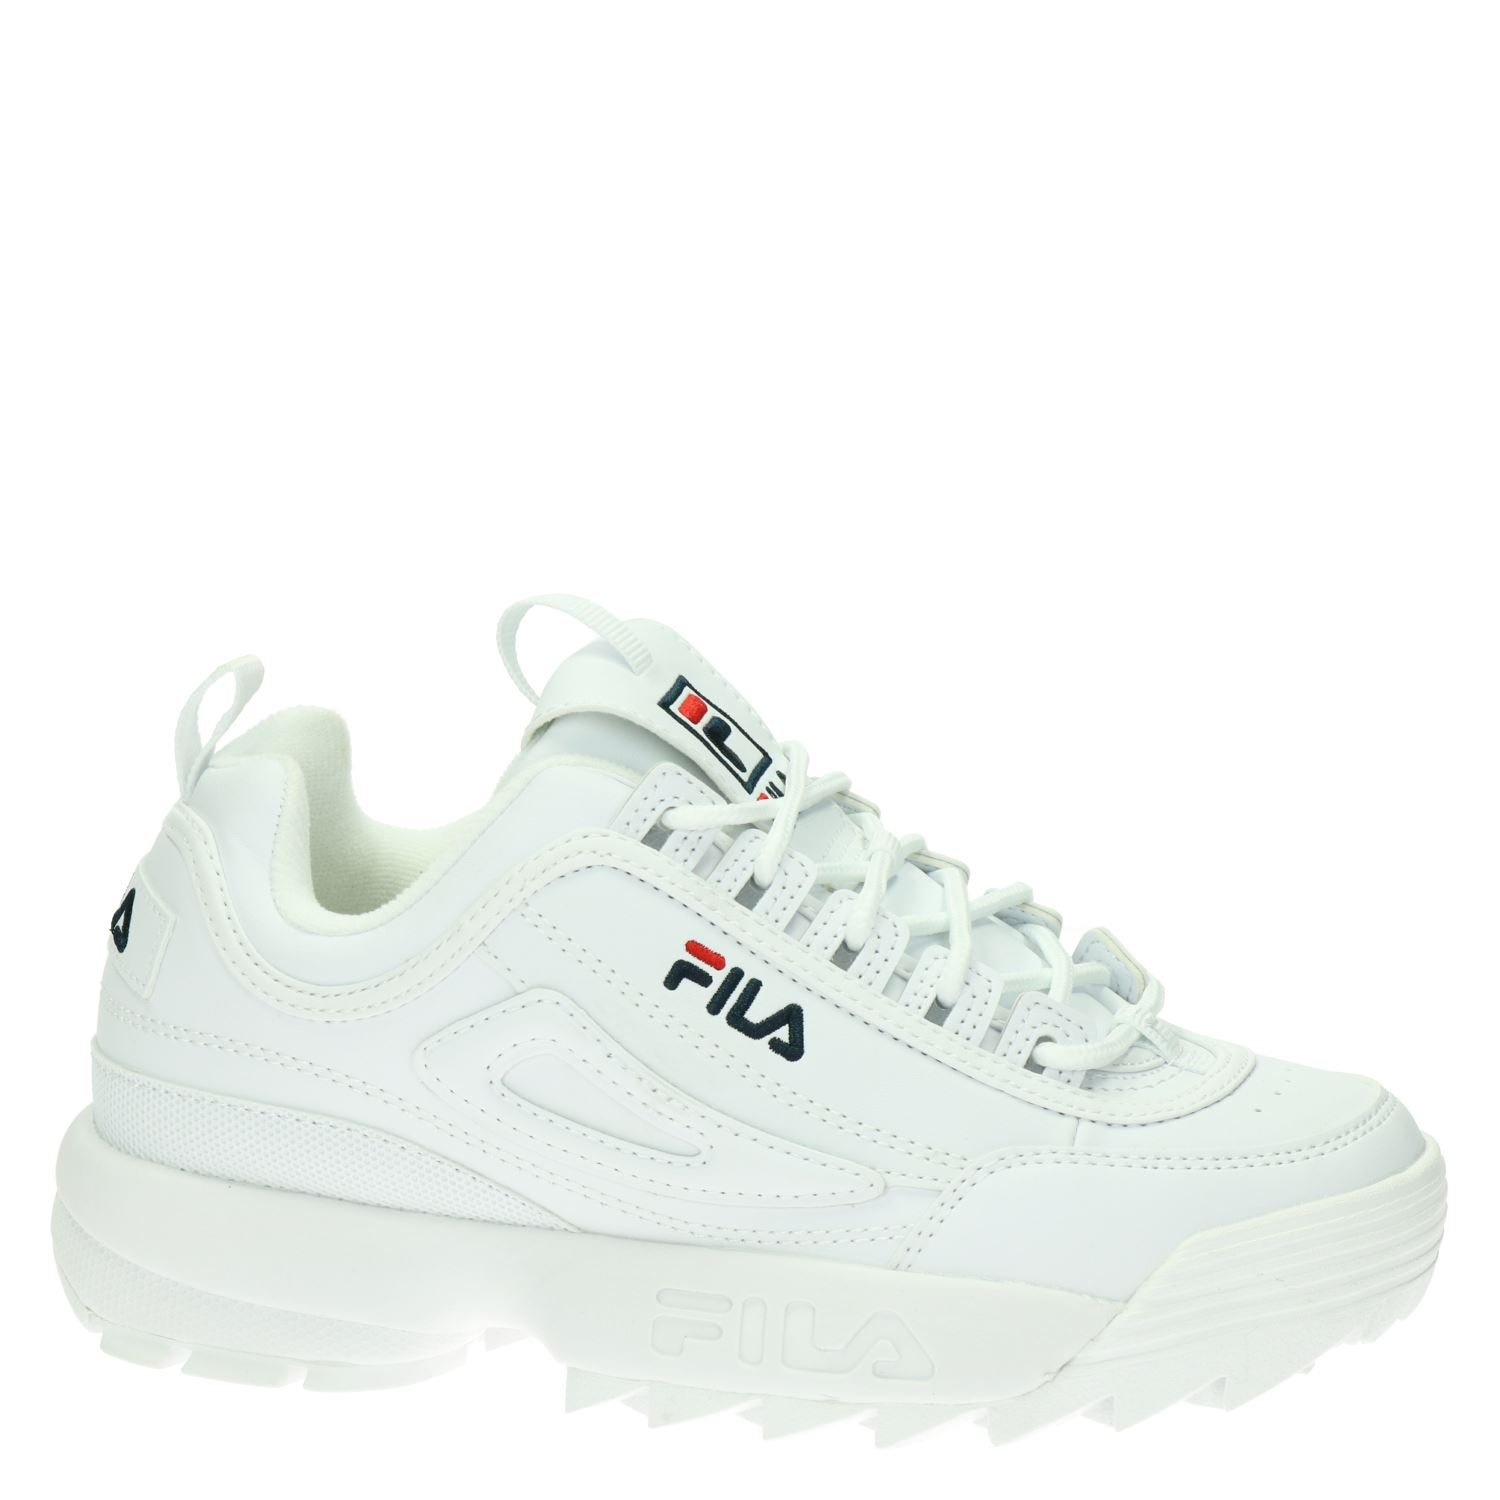 Fila Disruptor - Dad Sneakers voor dames - Wit MIyBFT3